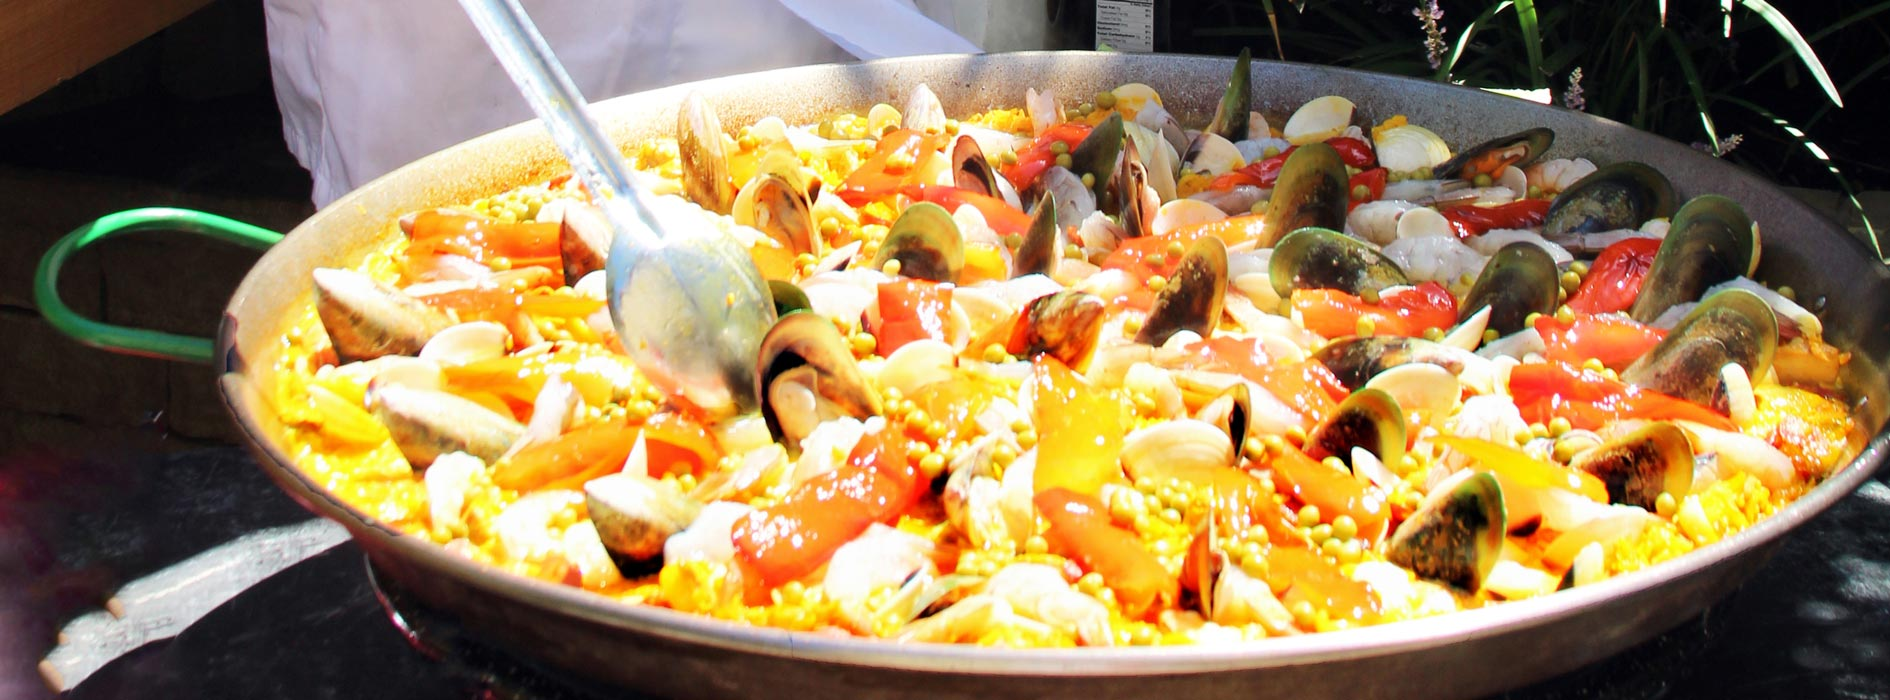 Our Paella chef making Paella